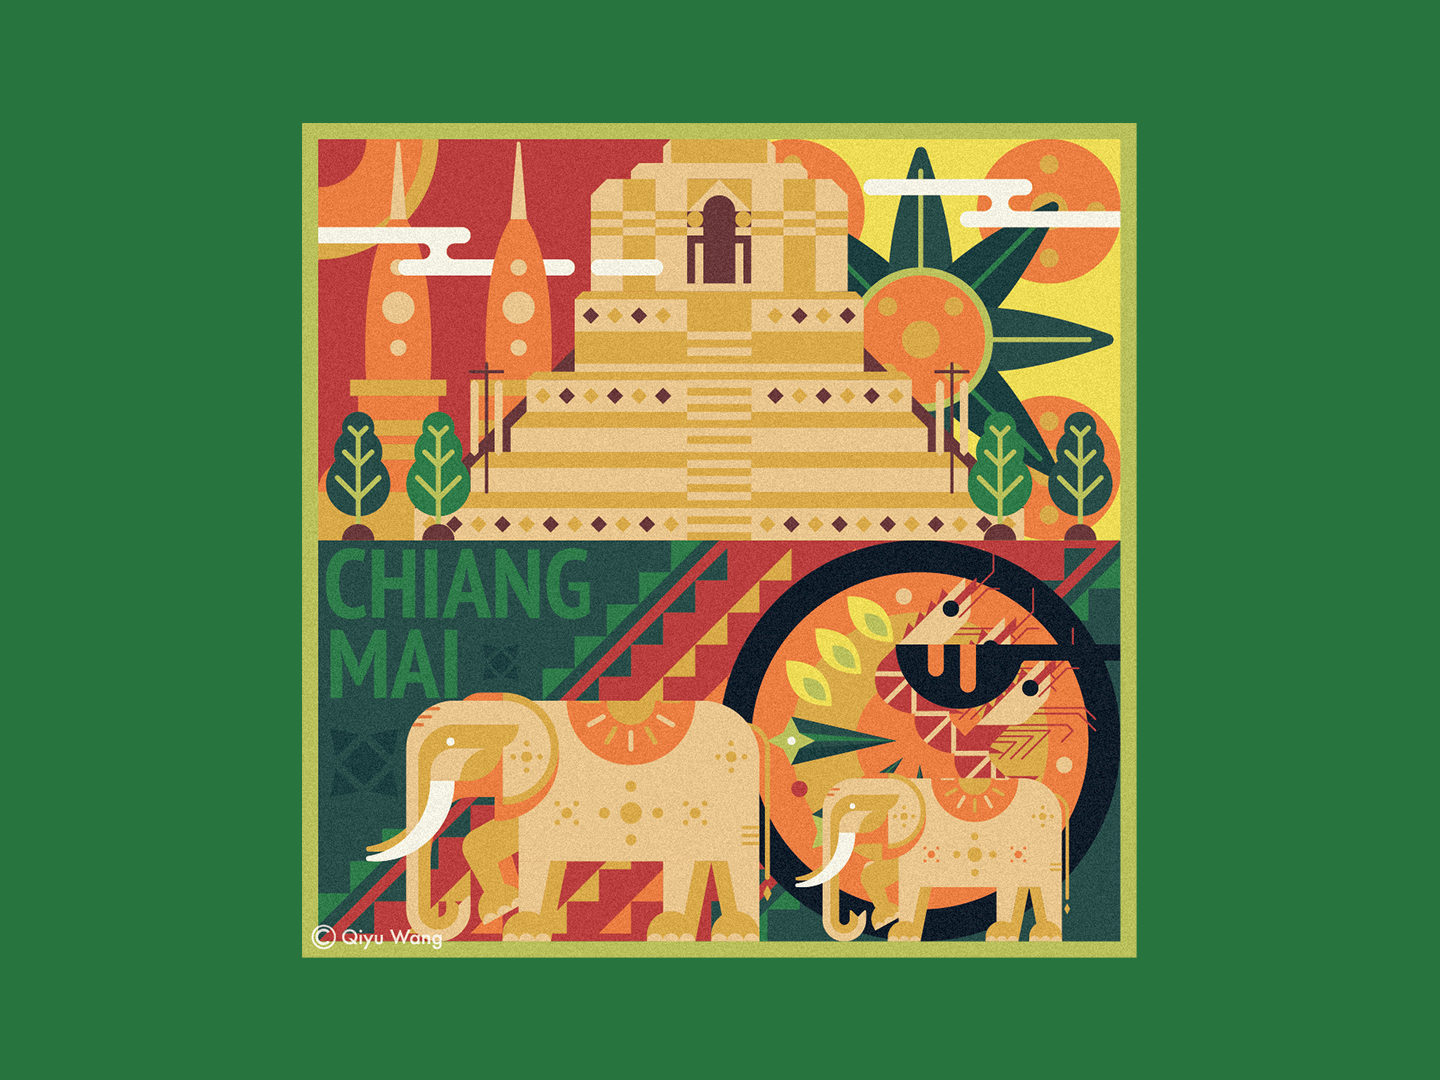 Square Illustration - Chiang Mai (Thailand) thailand chiangmai art joyful colorful travel square culture design city graphic illustration